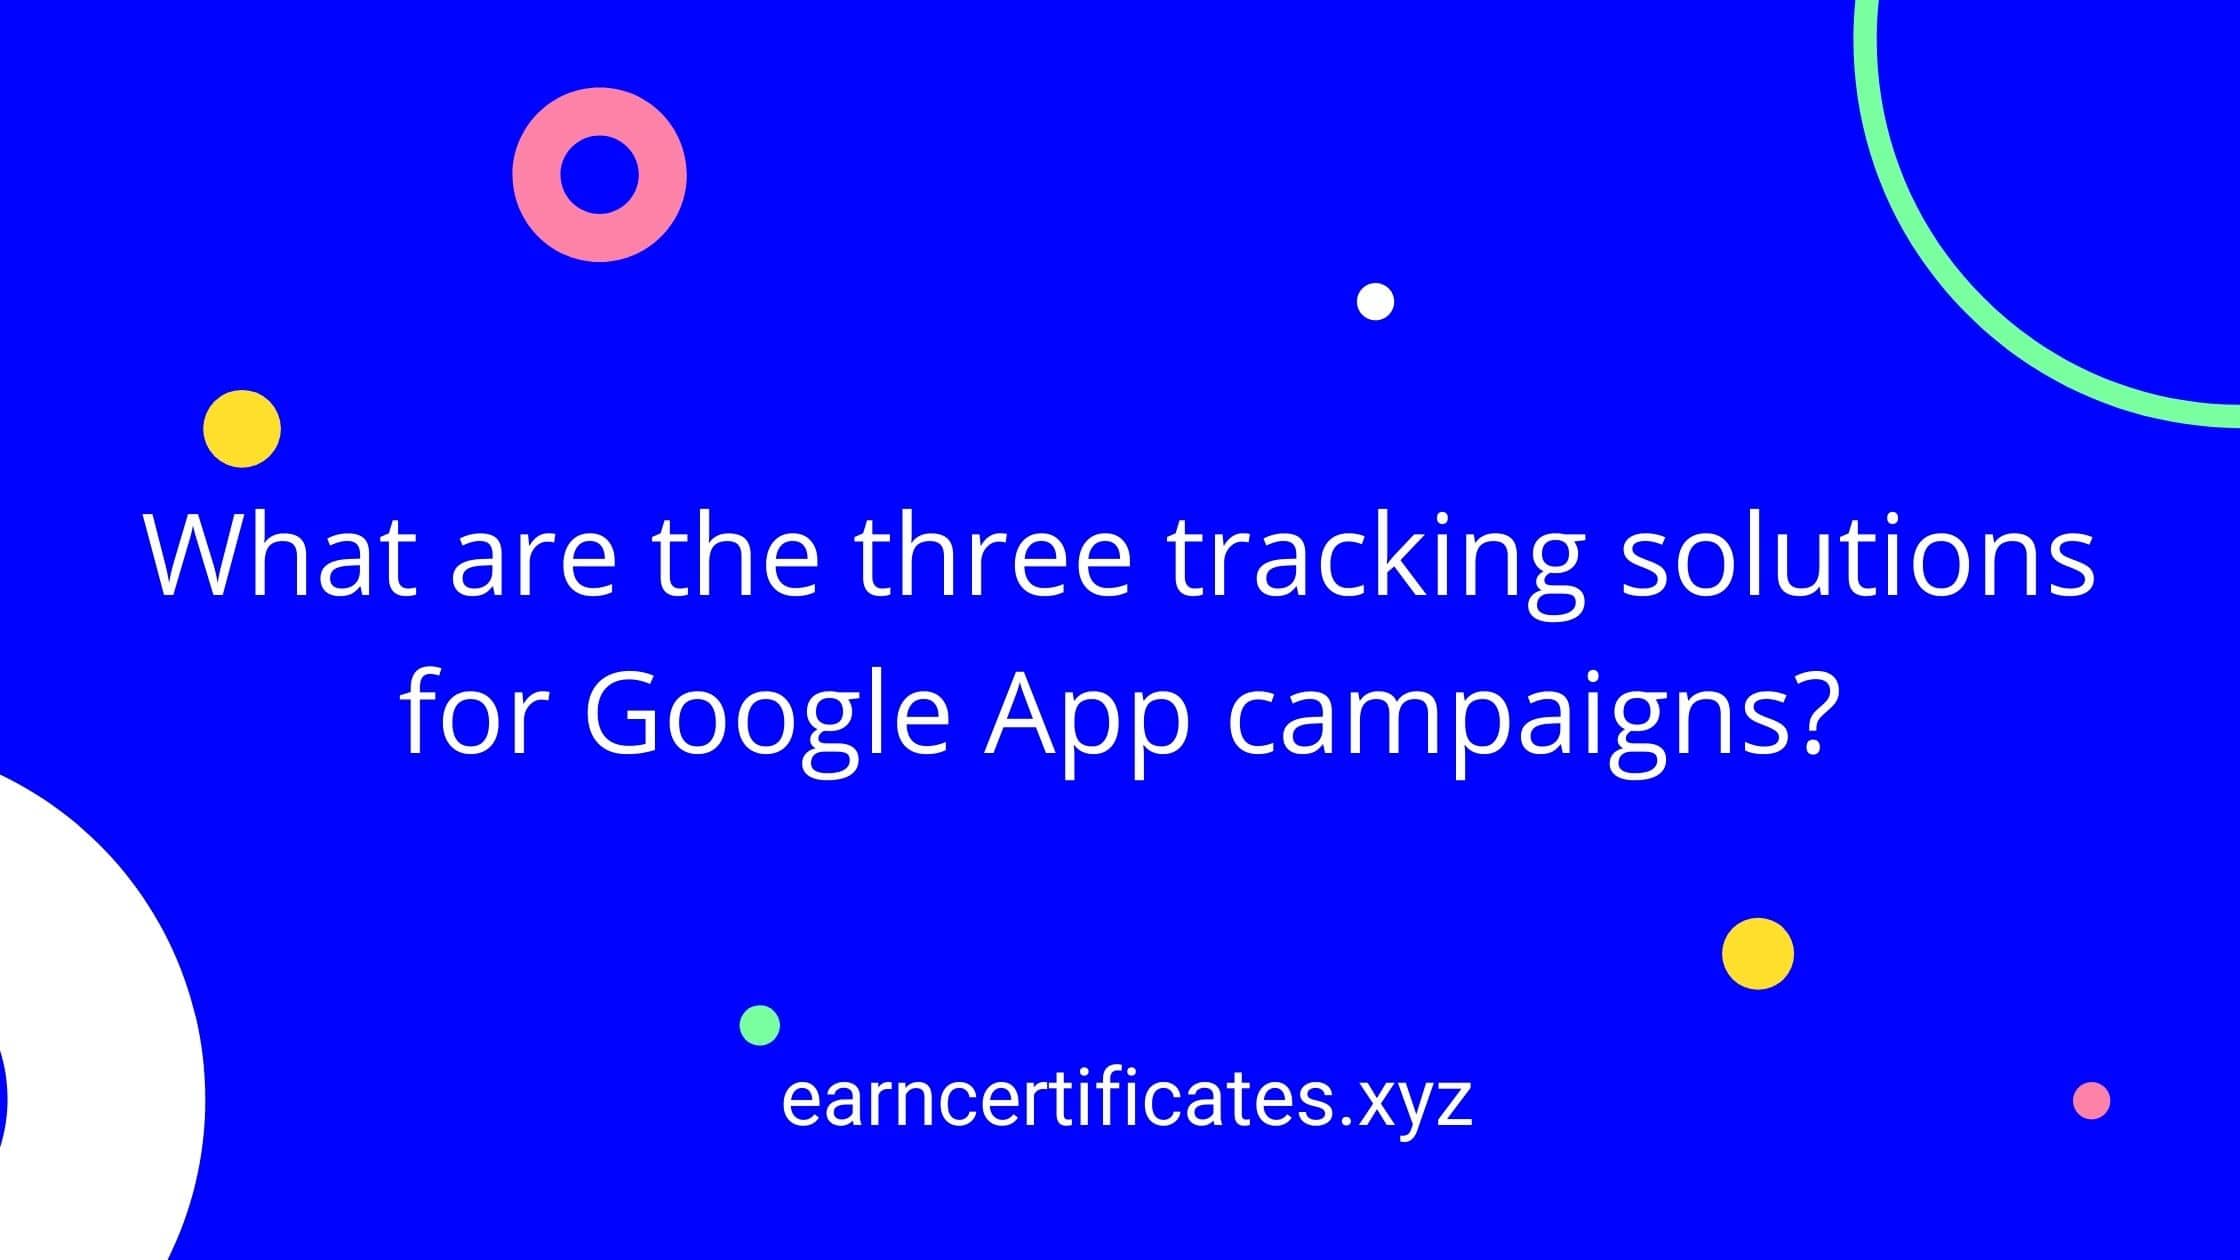 What are the three tracking solutions for Google App campaigns?